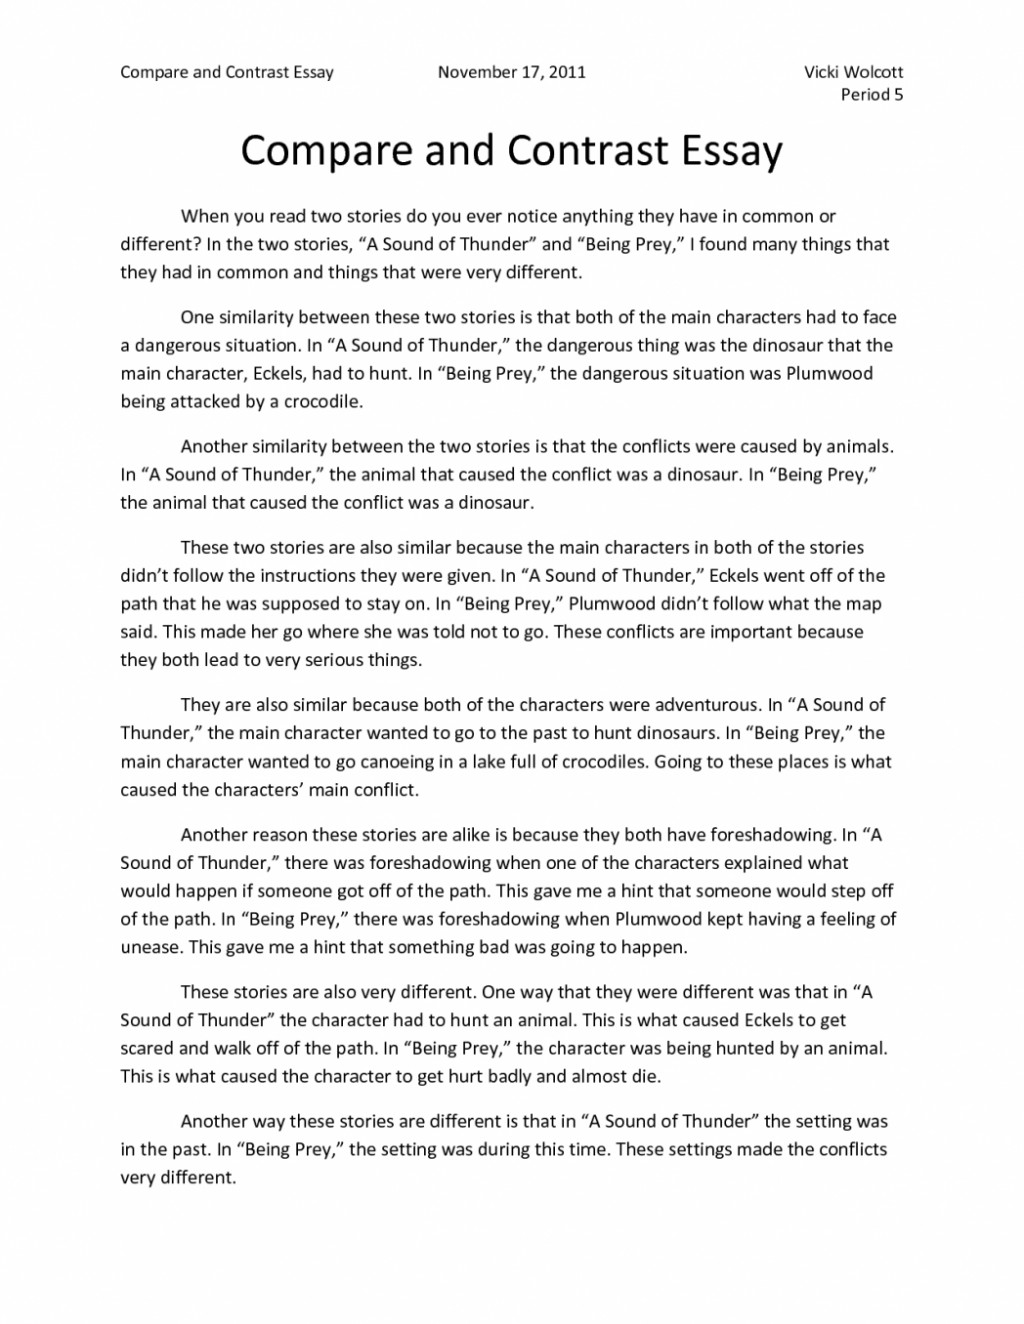 003 Conclusion For Compare And Contrast Essay Writing Comparison Argumentative Example How To Write An Samples Rare Block Method Sample High School Examples Middle Large